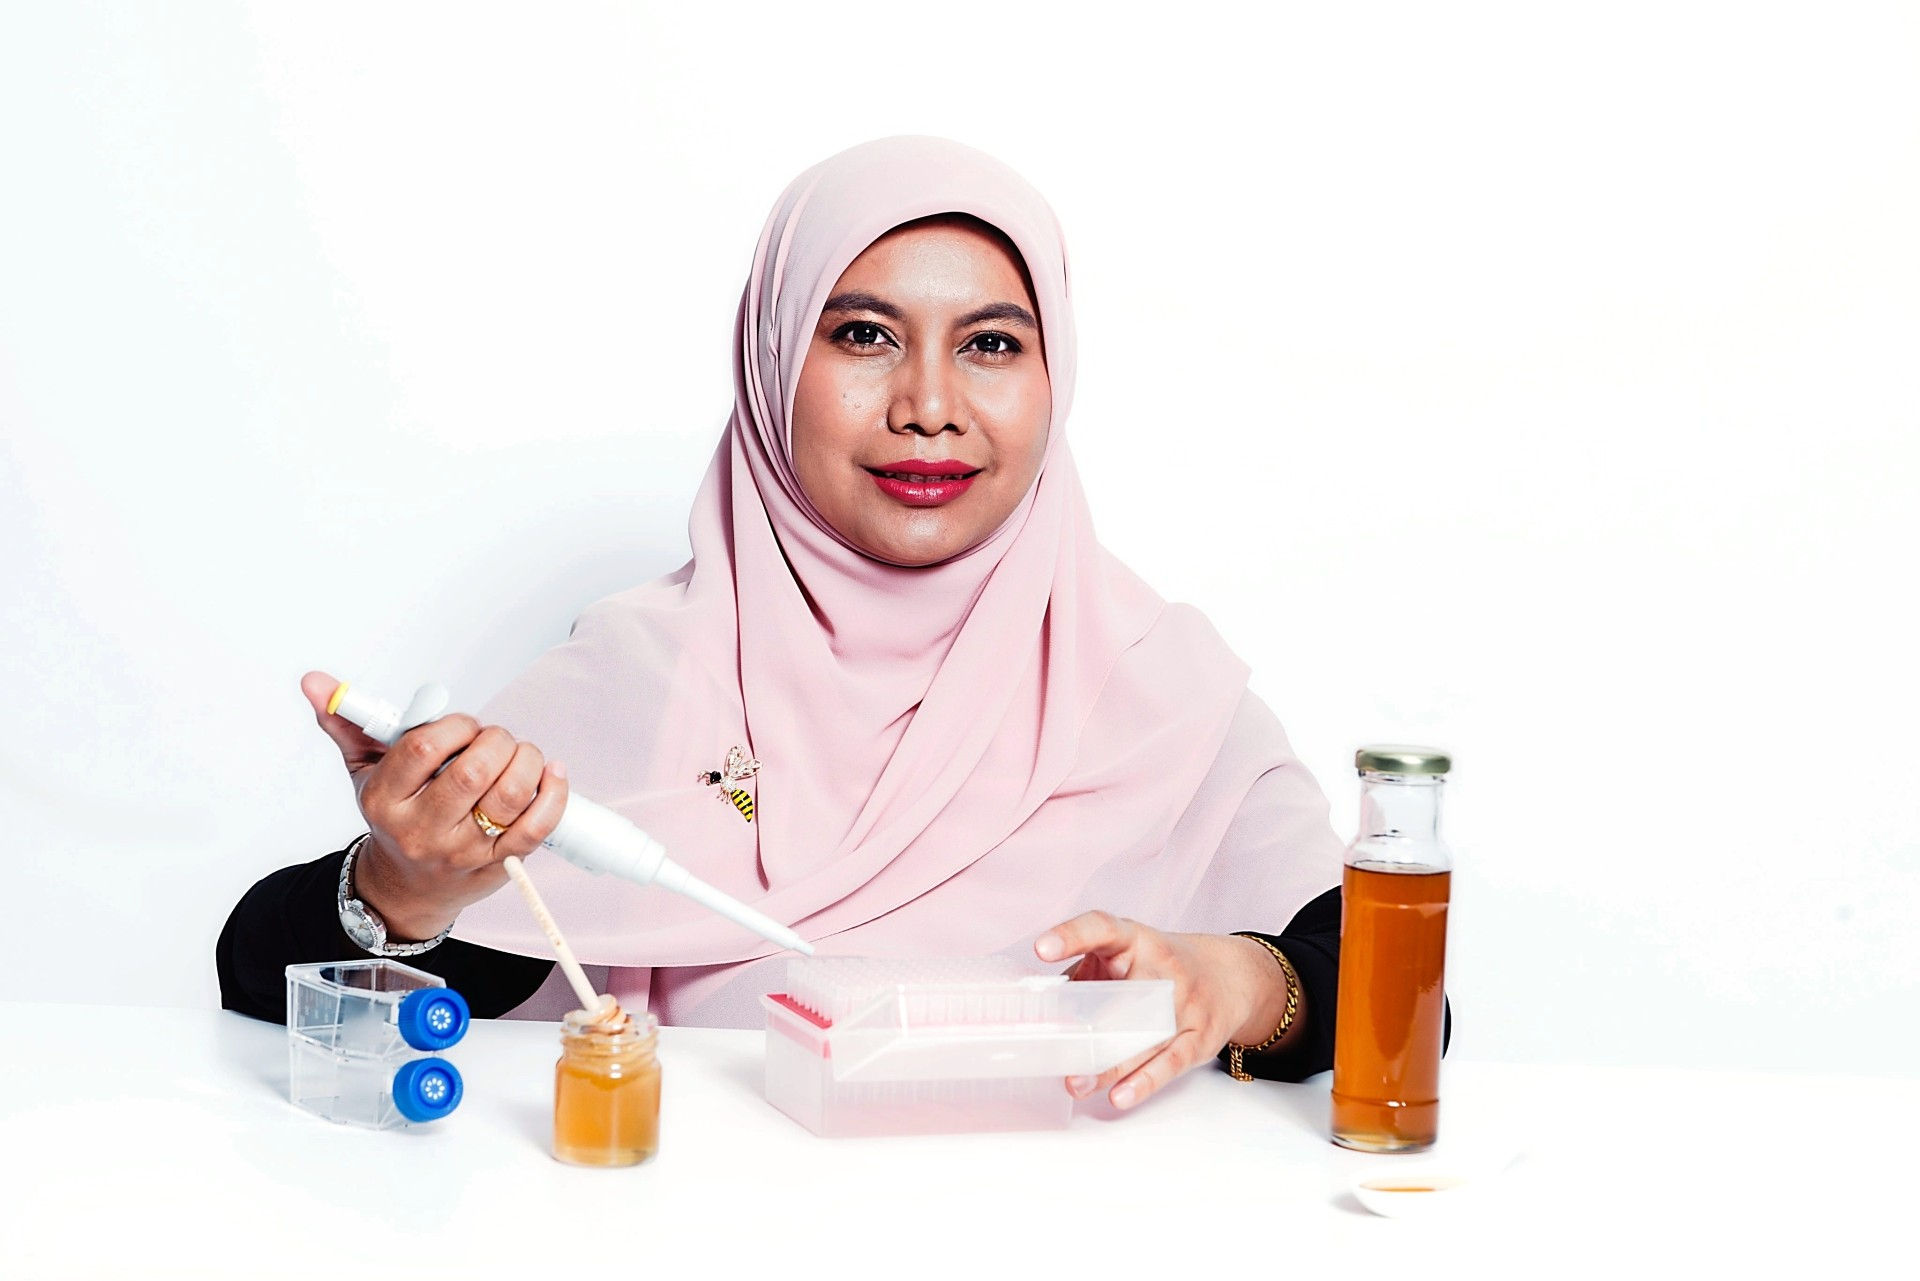 Dr Wan Iryani hopes her research can make a difference to people with diabetes and obesity issues. Photo: L'Oreal